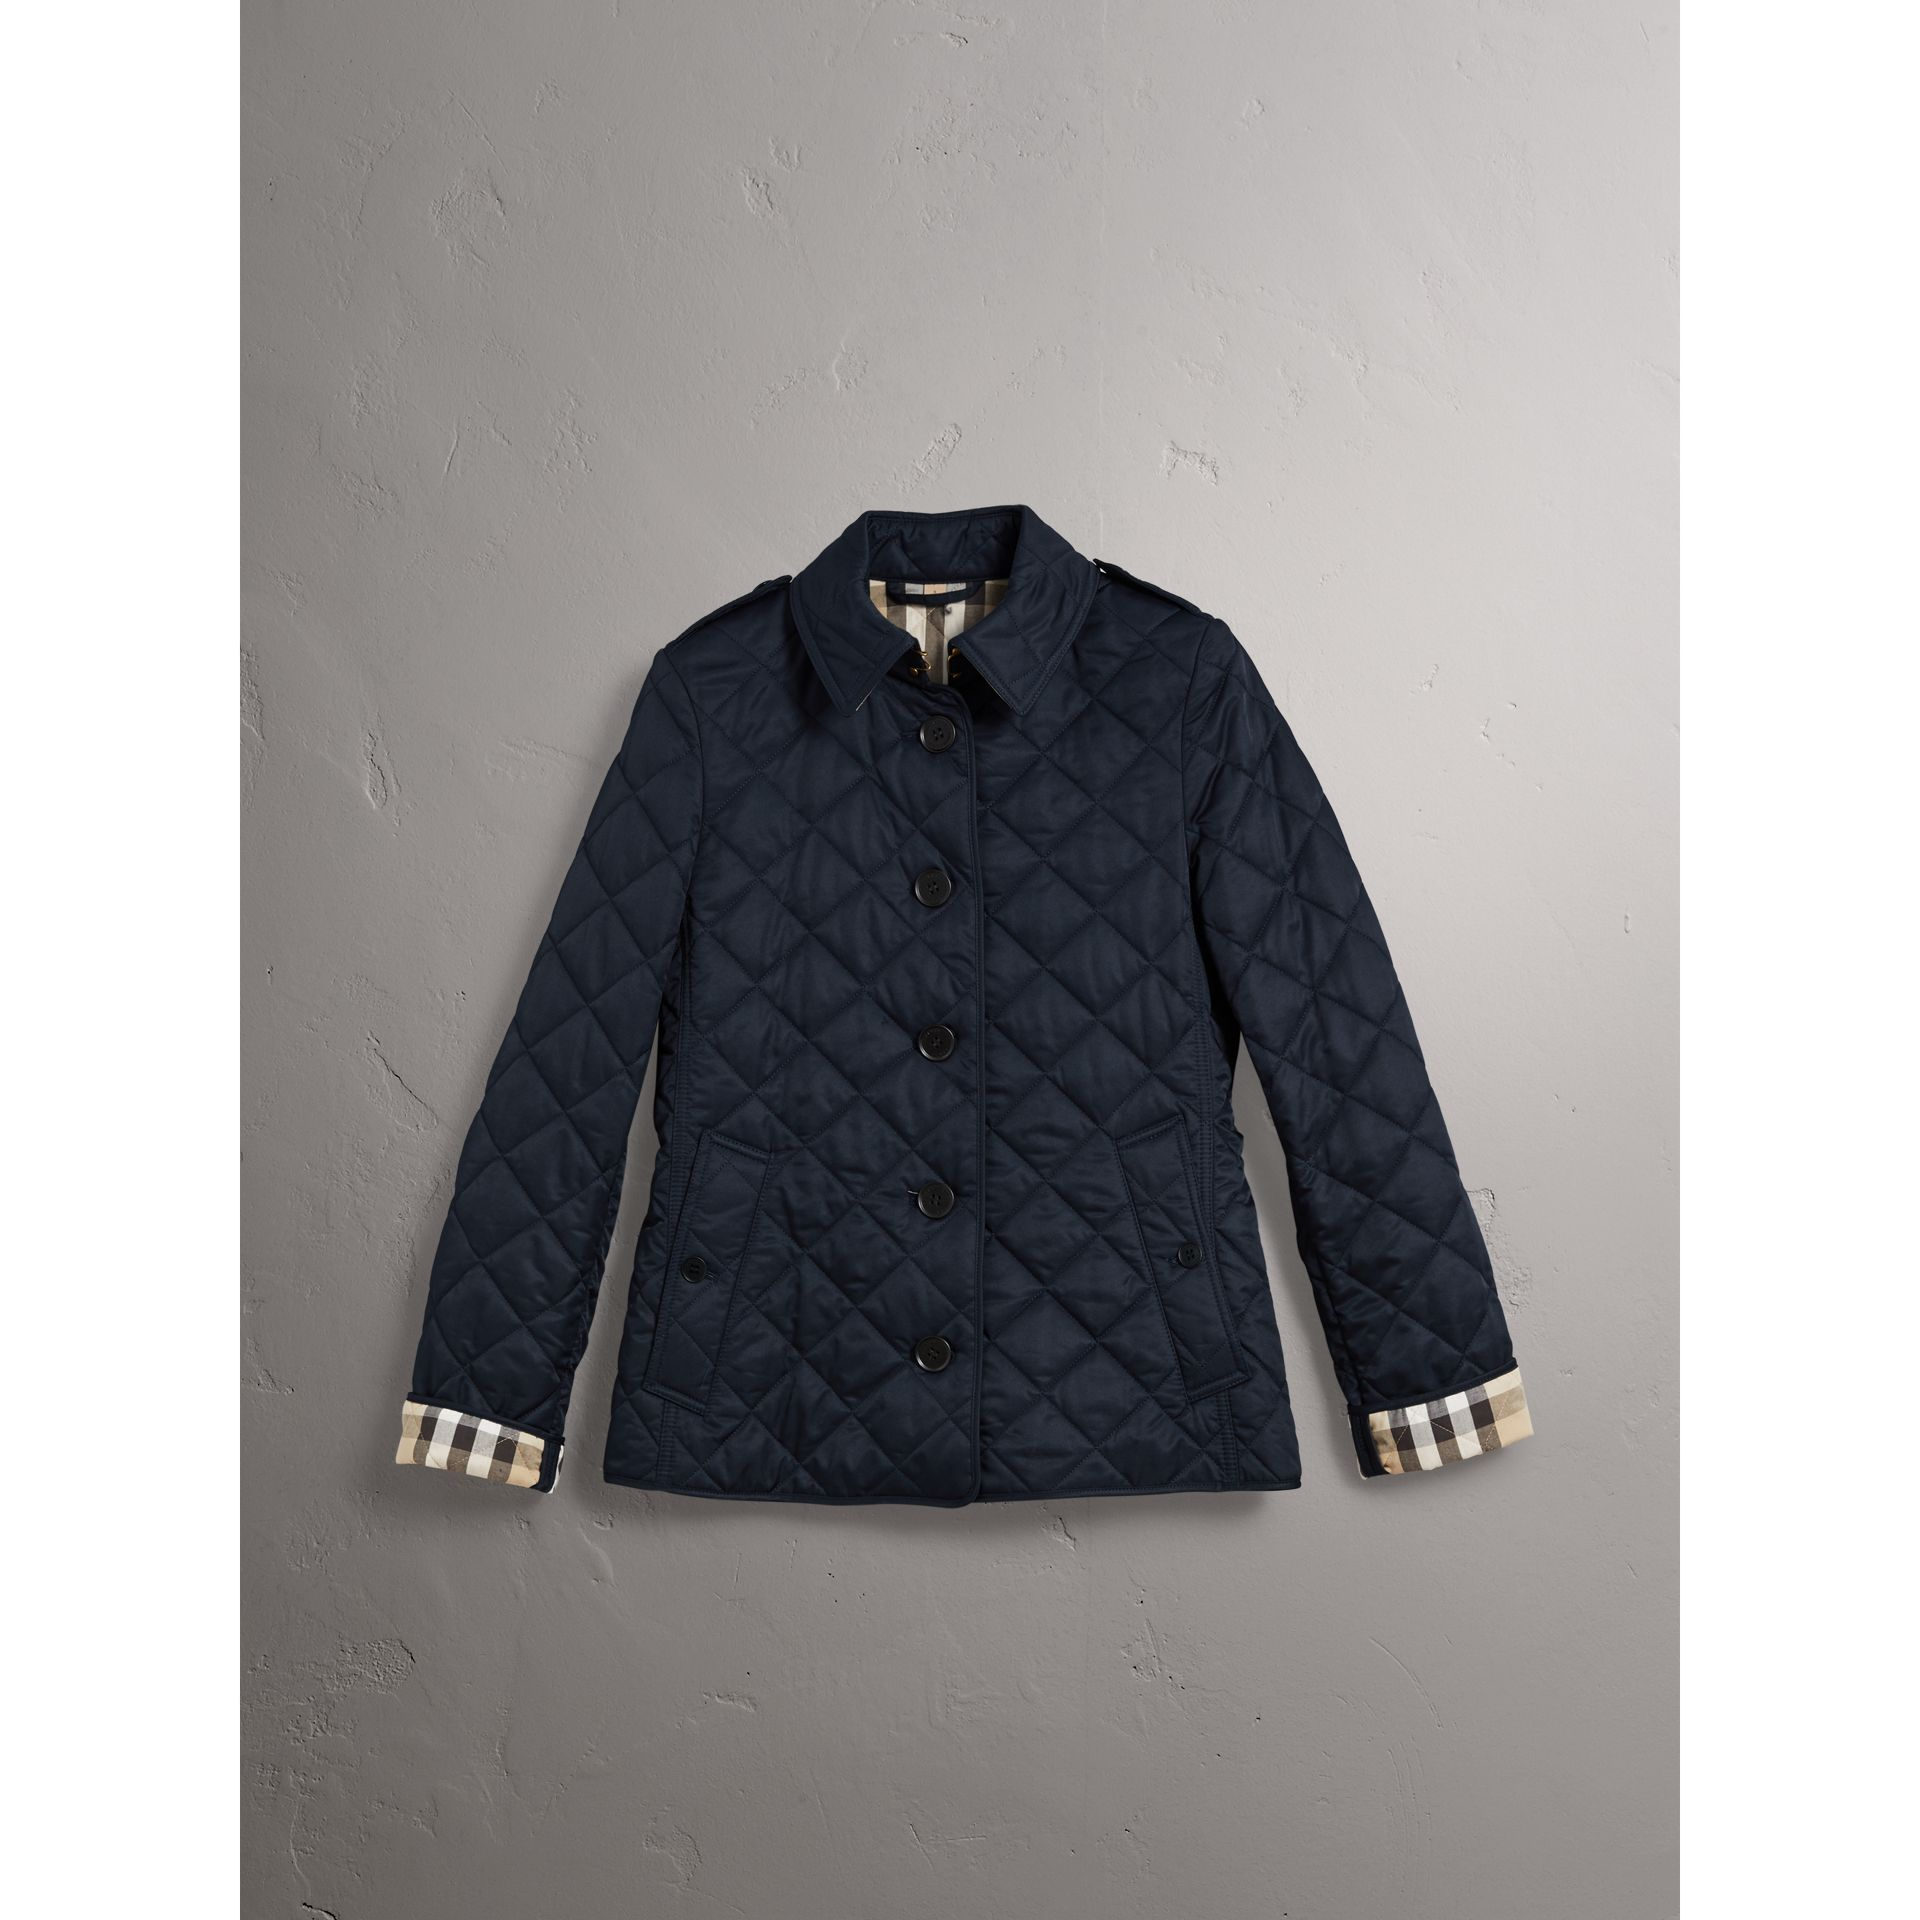 Diamond Quilted Jacket in Navy - Women | Burberry United States - gallery image 3